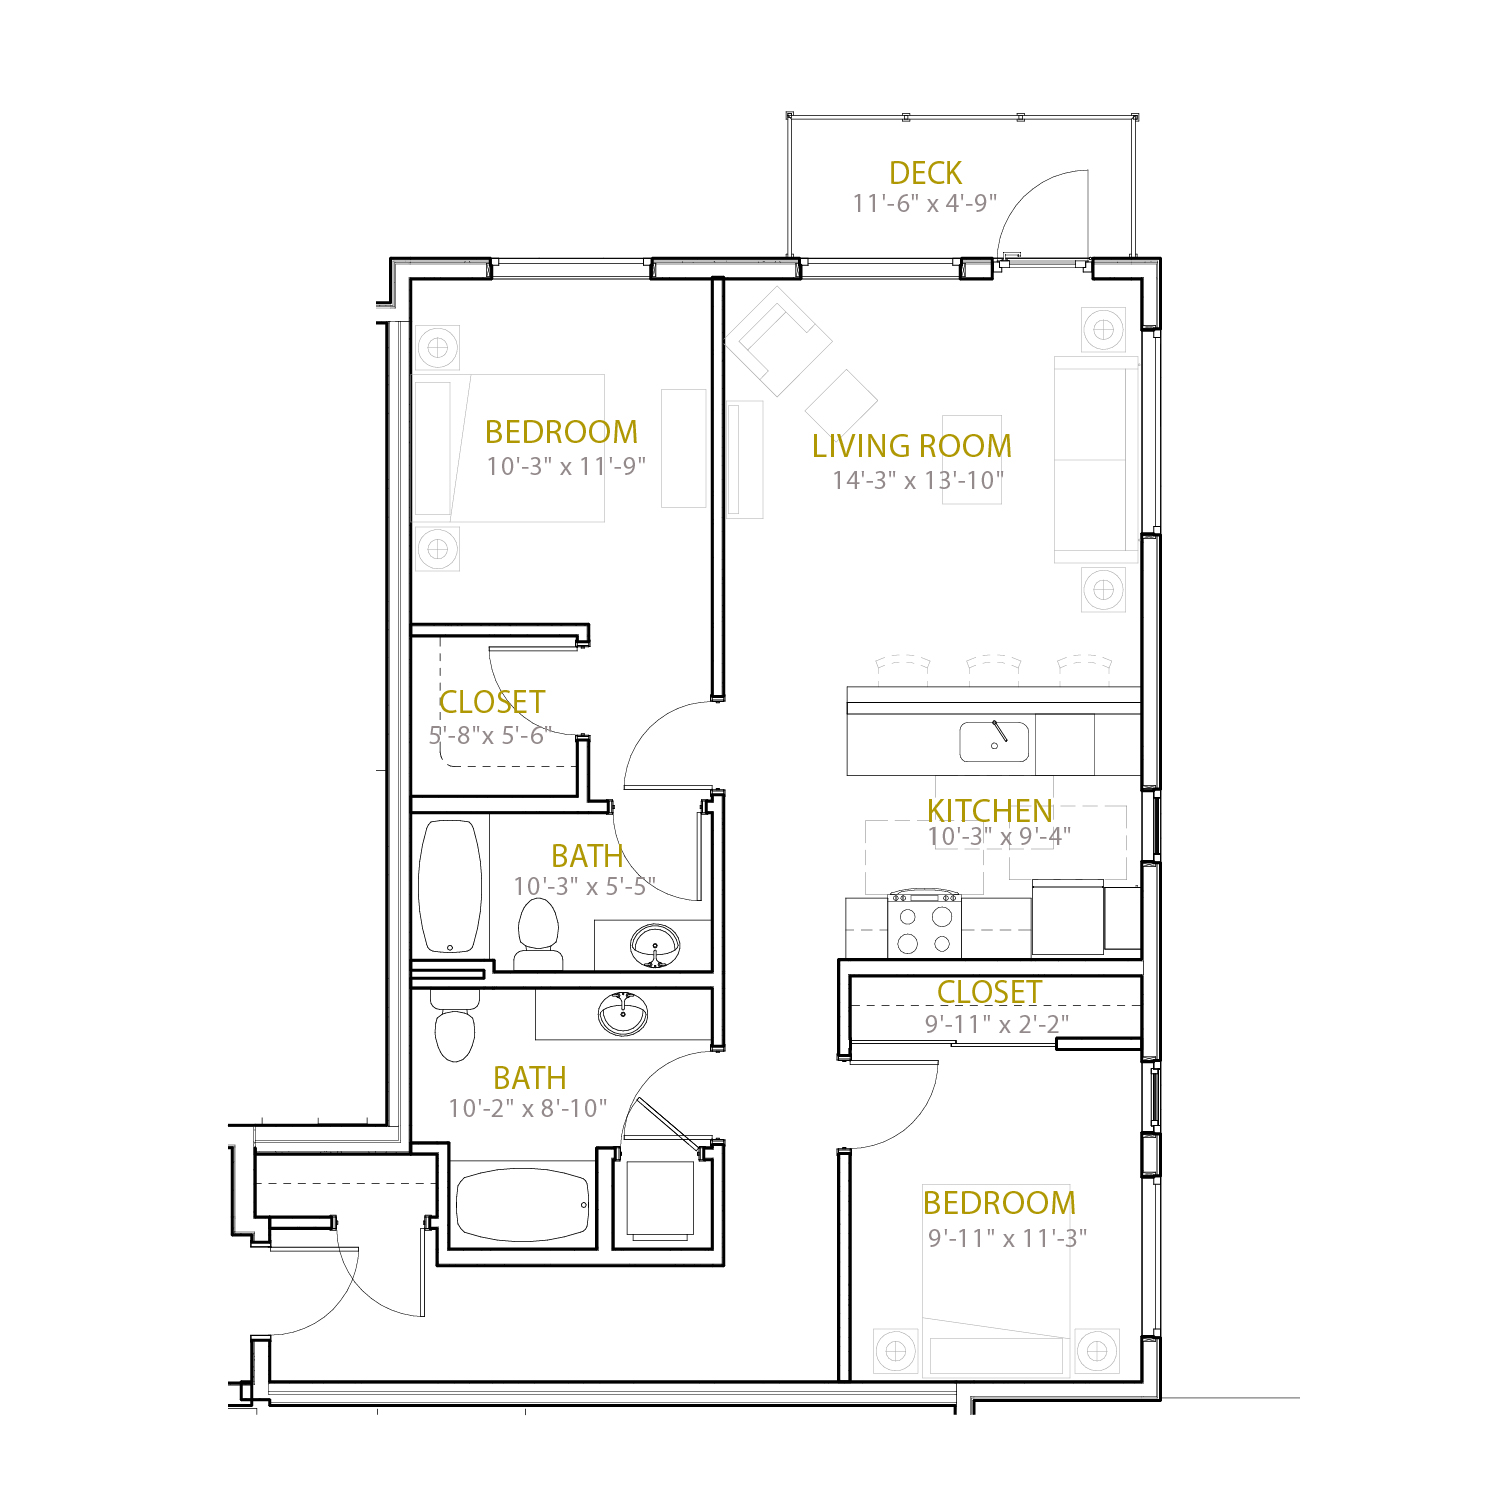 C Seven floor plan diagram. Two bedrooms, two bathrooms, an open kitchen and living area, and a deck.